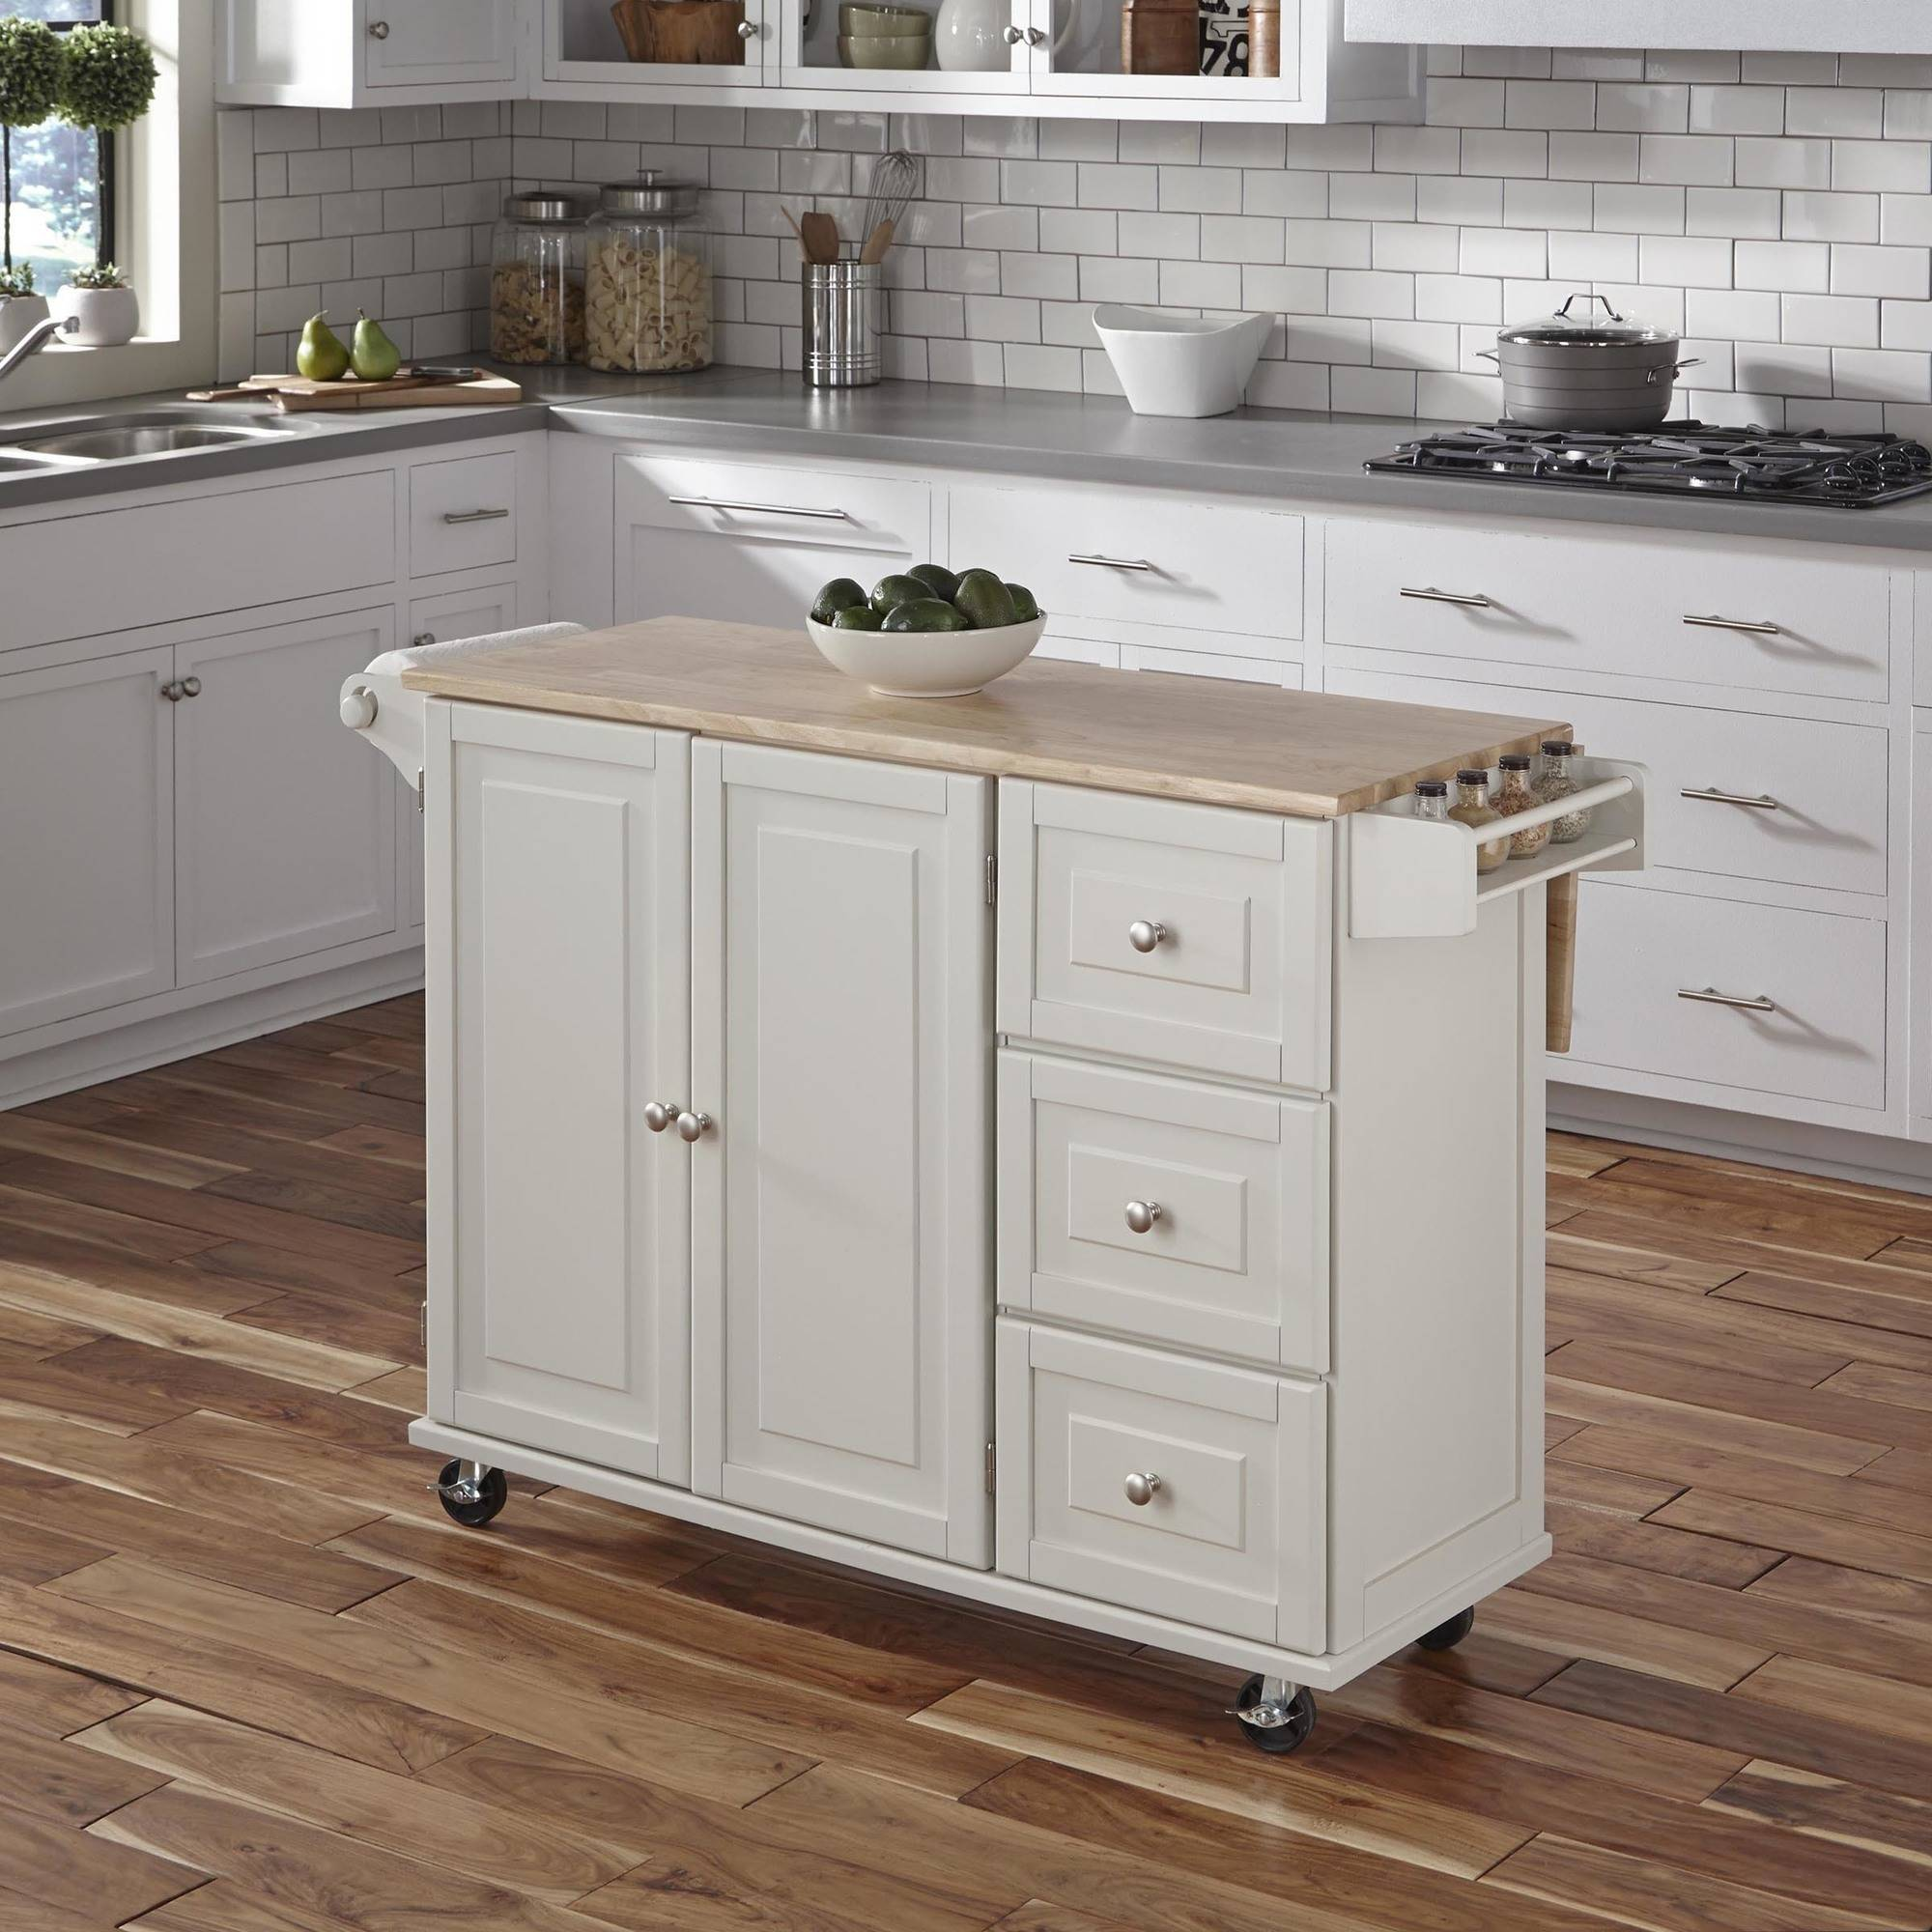 Liberty Kitchen Cart with Wood Top, White by Home Styles